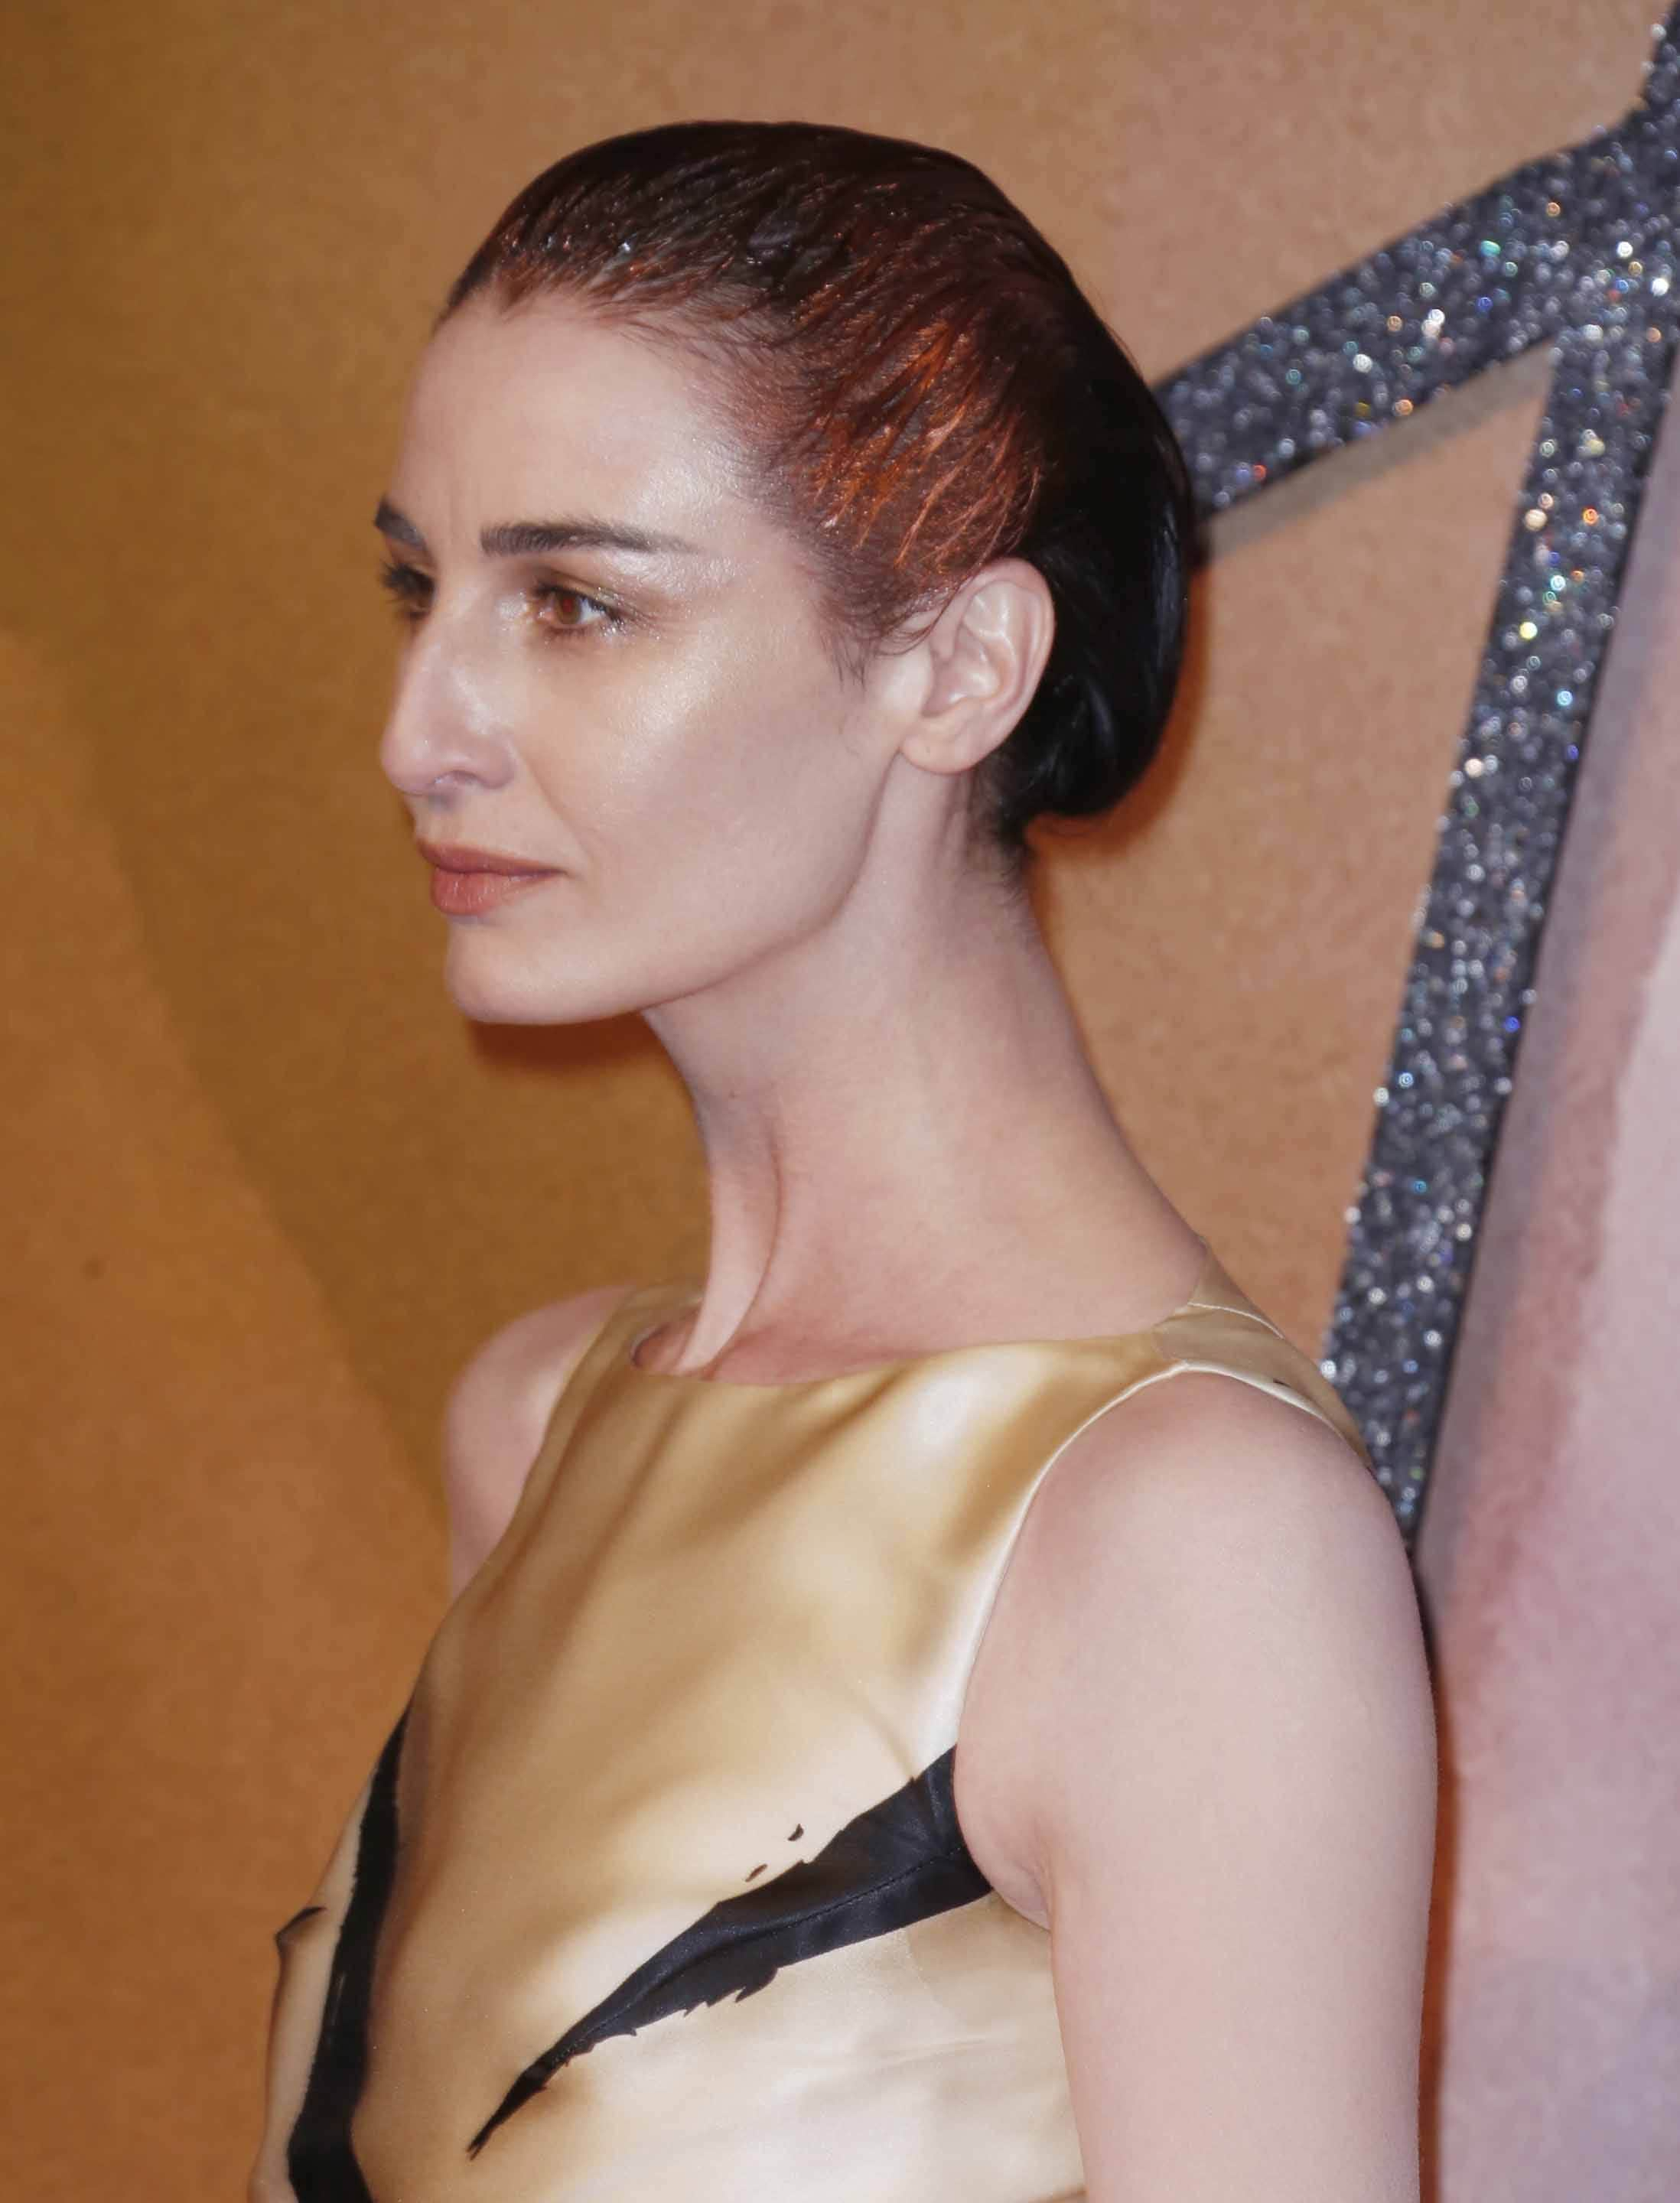 Fashion Awards 2016: All Things Hair - IMAGE - celebrity gallery Erin O'Connor wet look gel updo